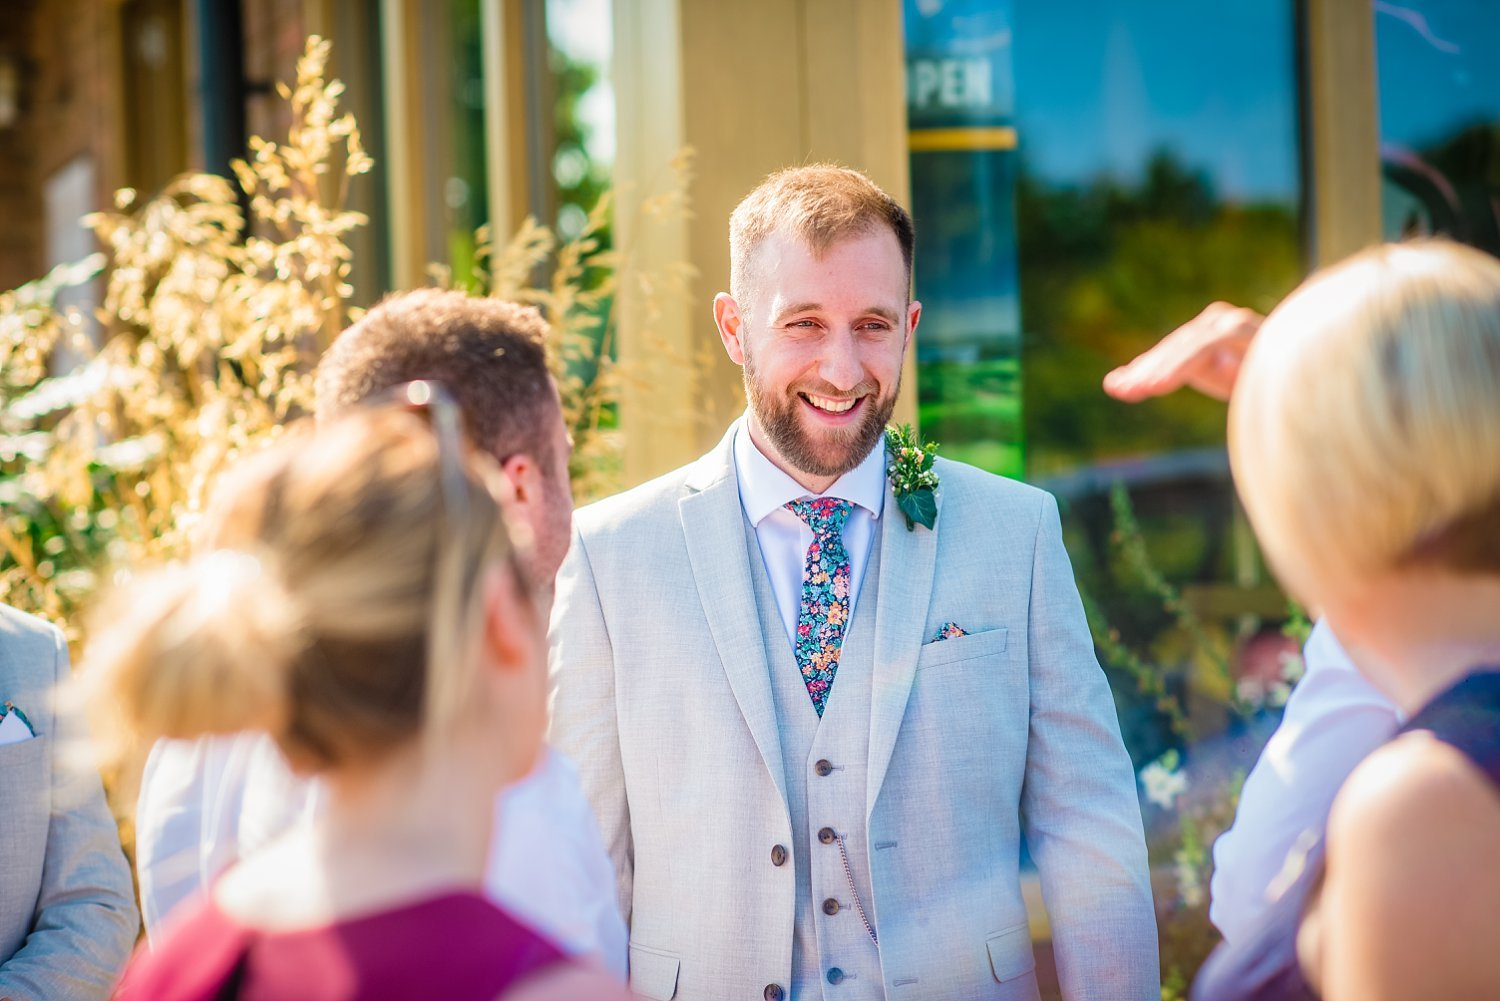 Farnham Wedding Photographer - groom is smiling